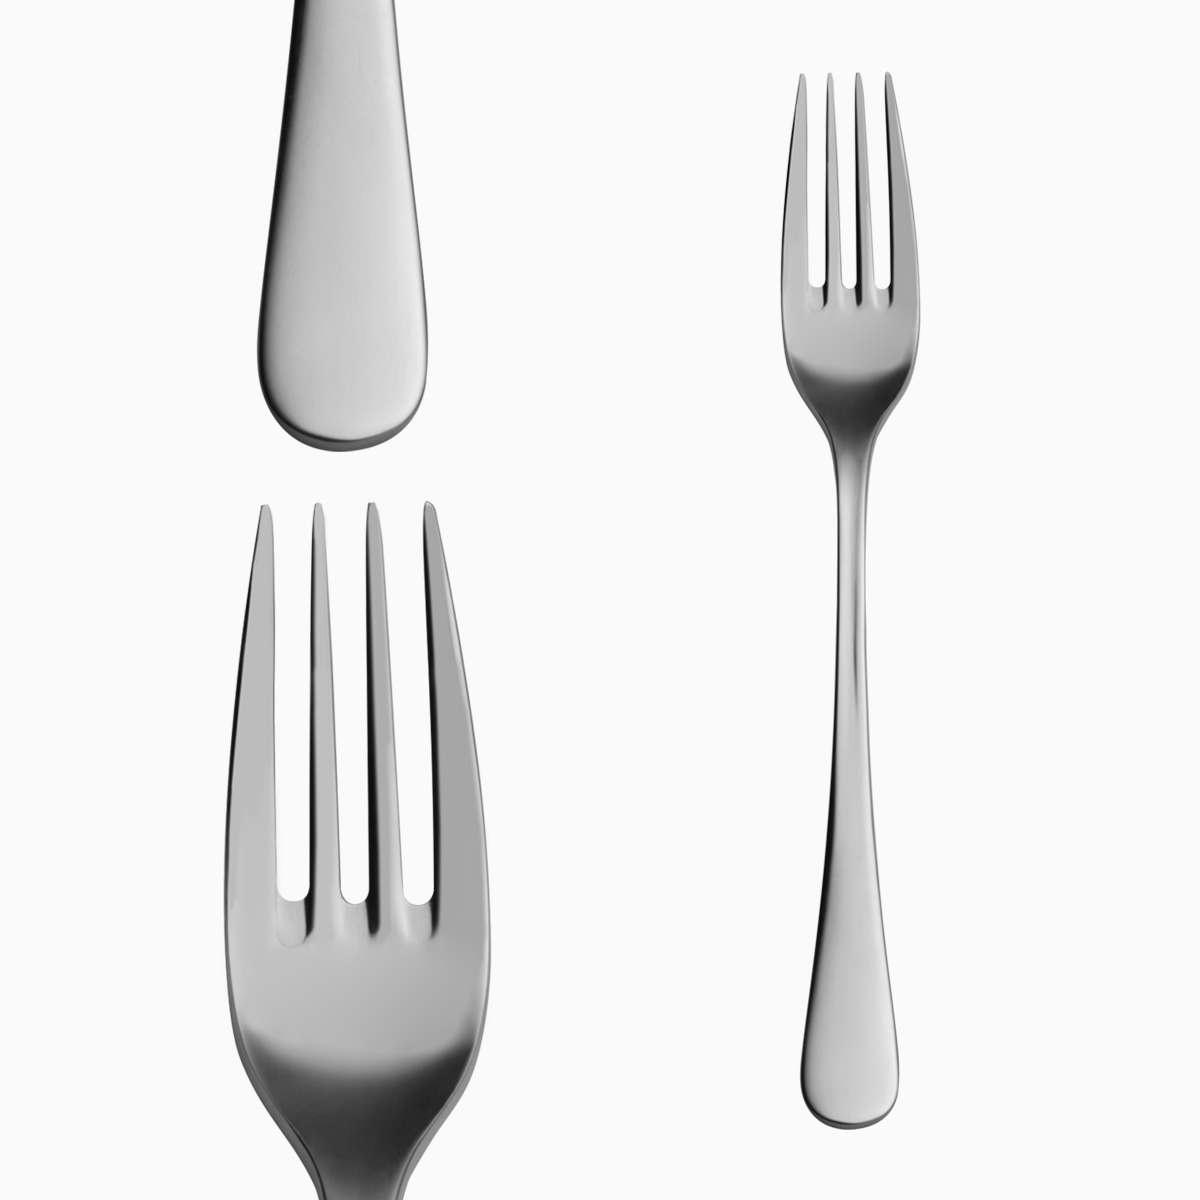 Table fork - Bacchus CNS